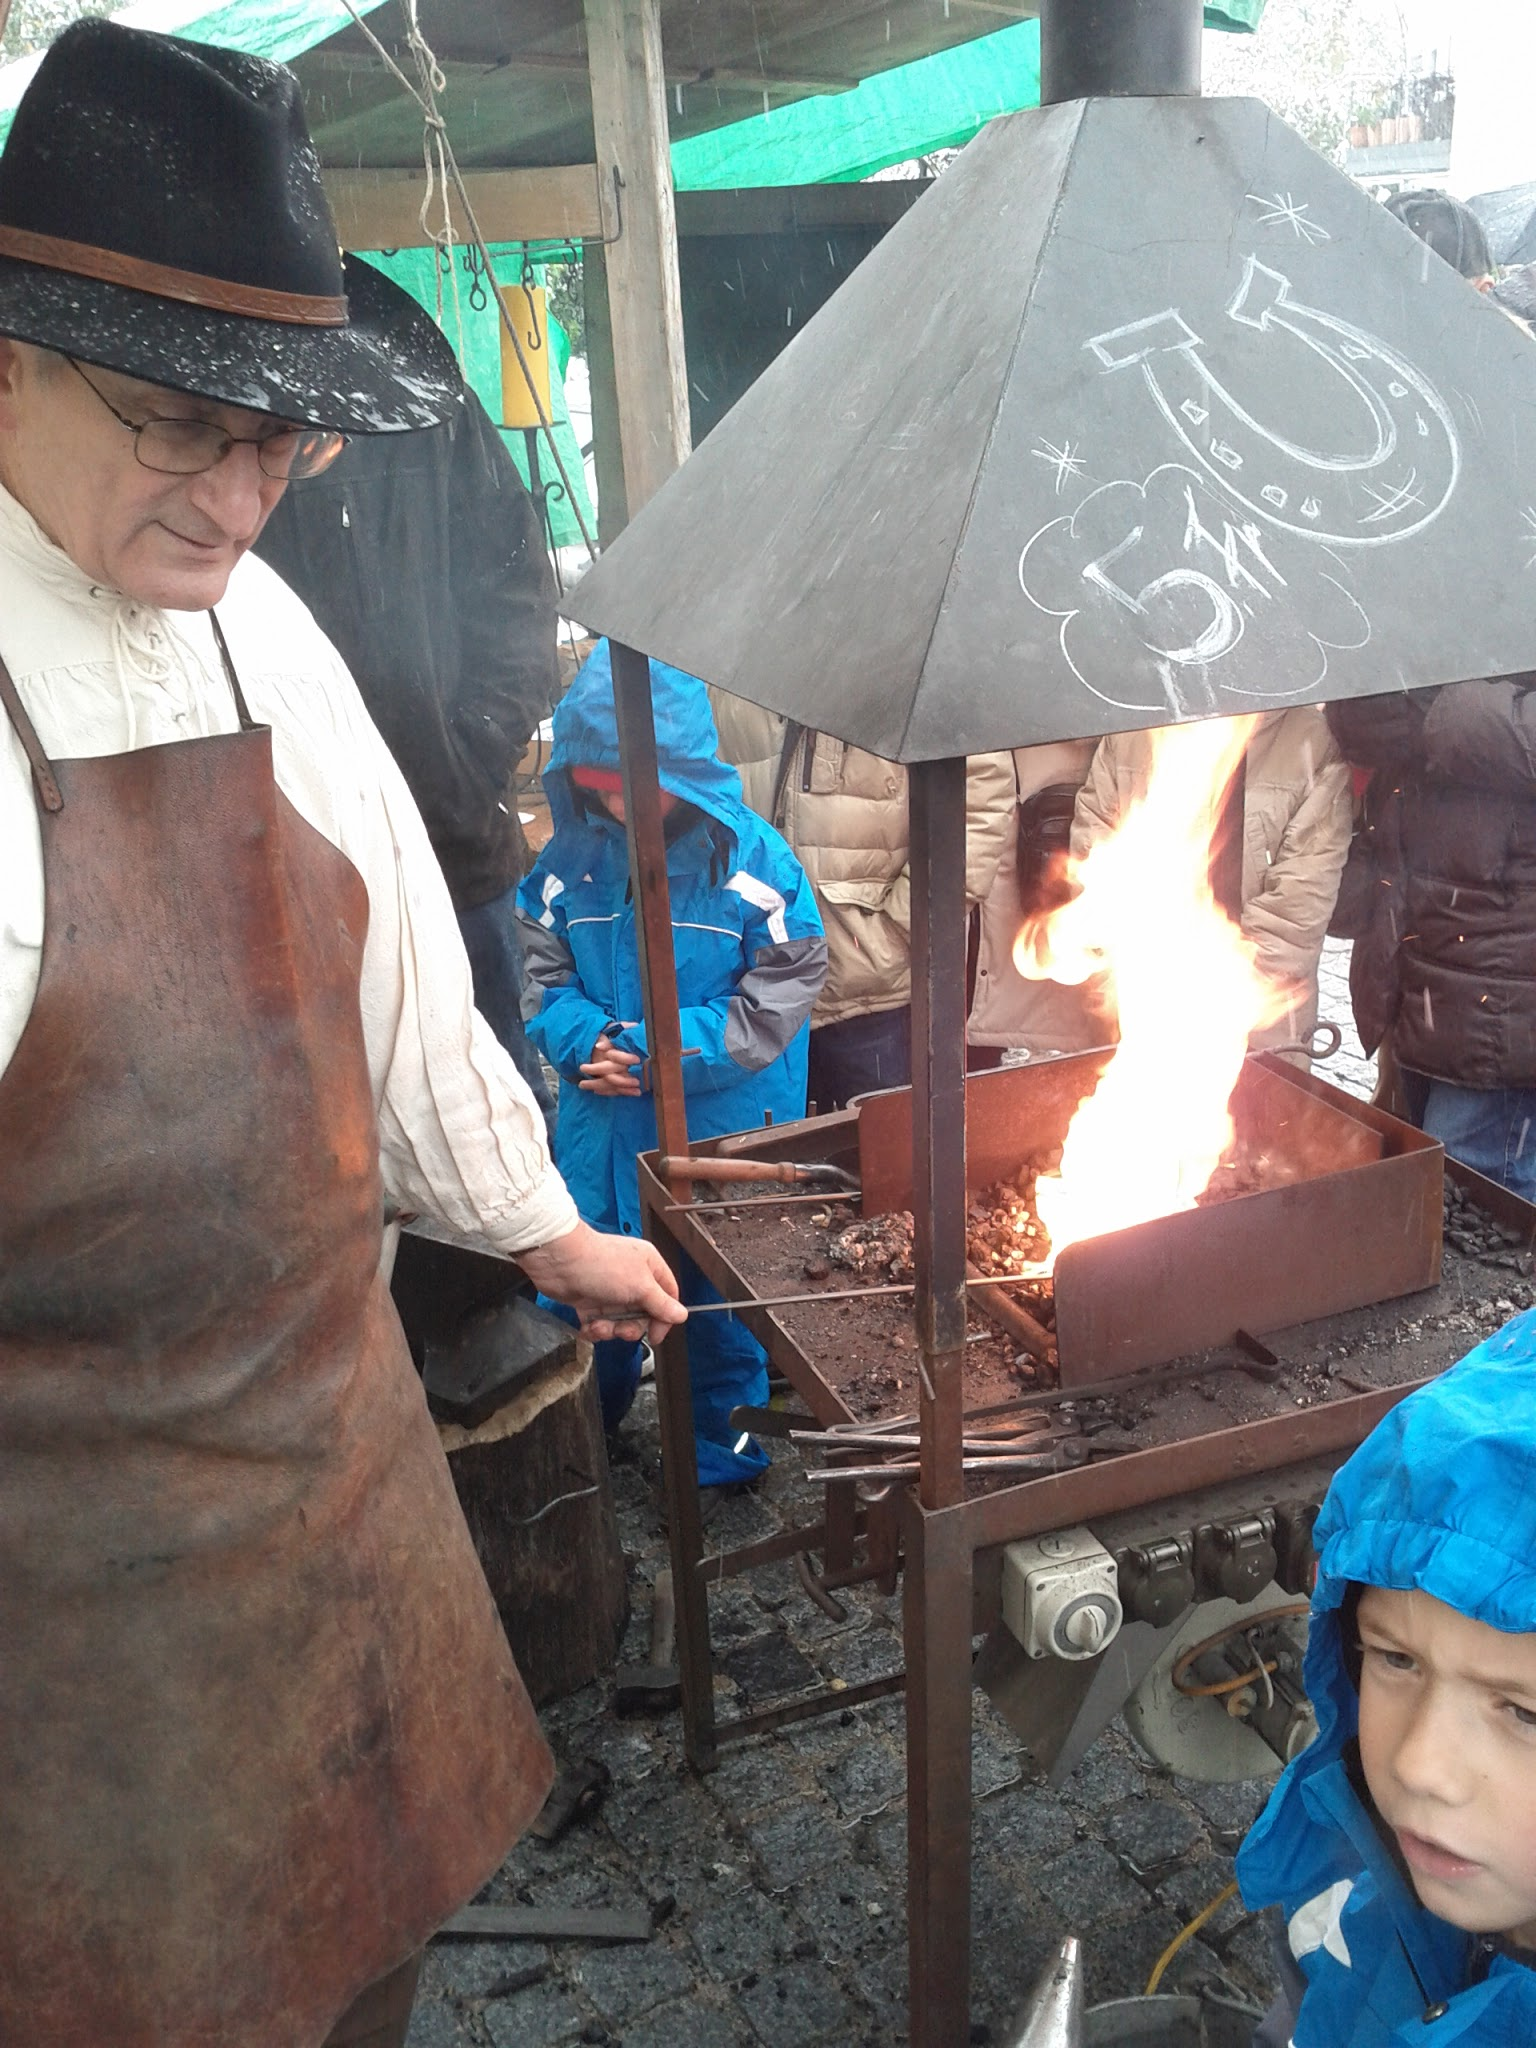 At the mediaeval forge